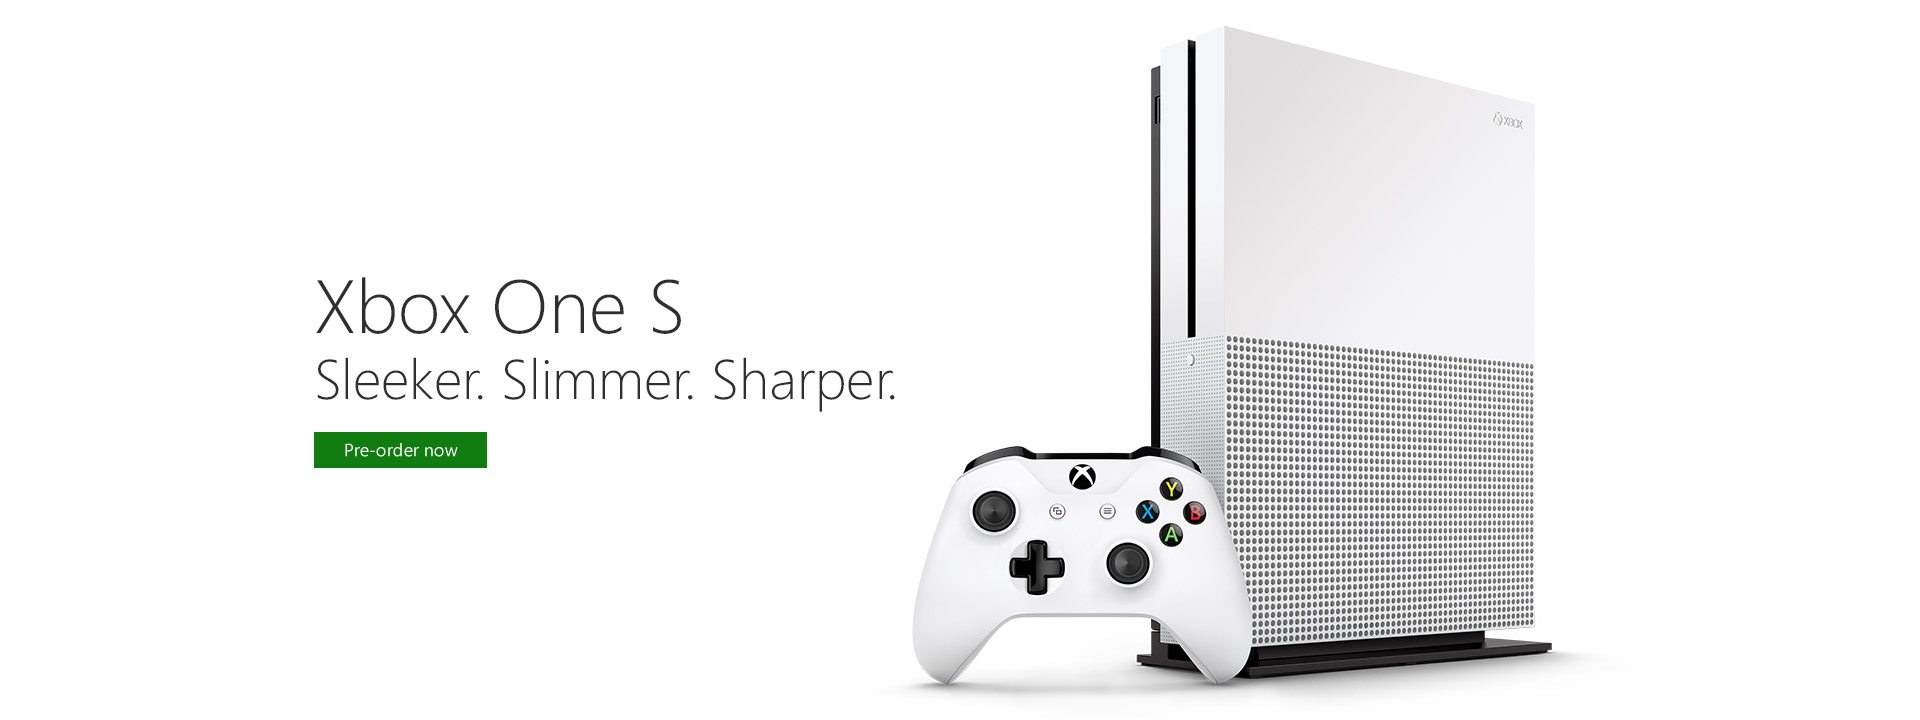 Buy xbox one s and get a gift mmoexaminer